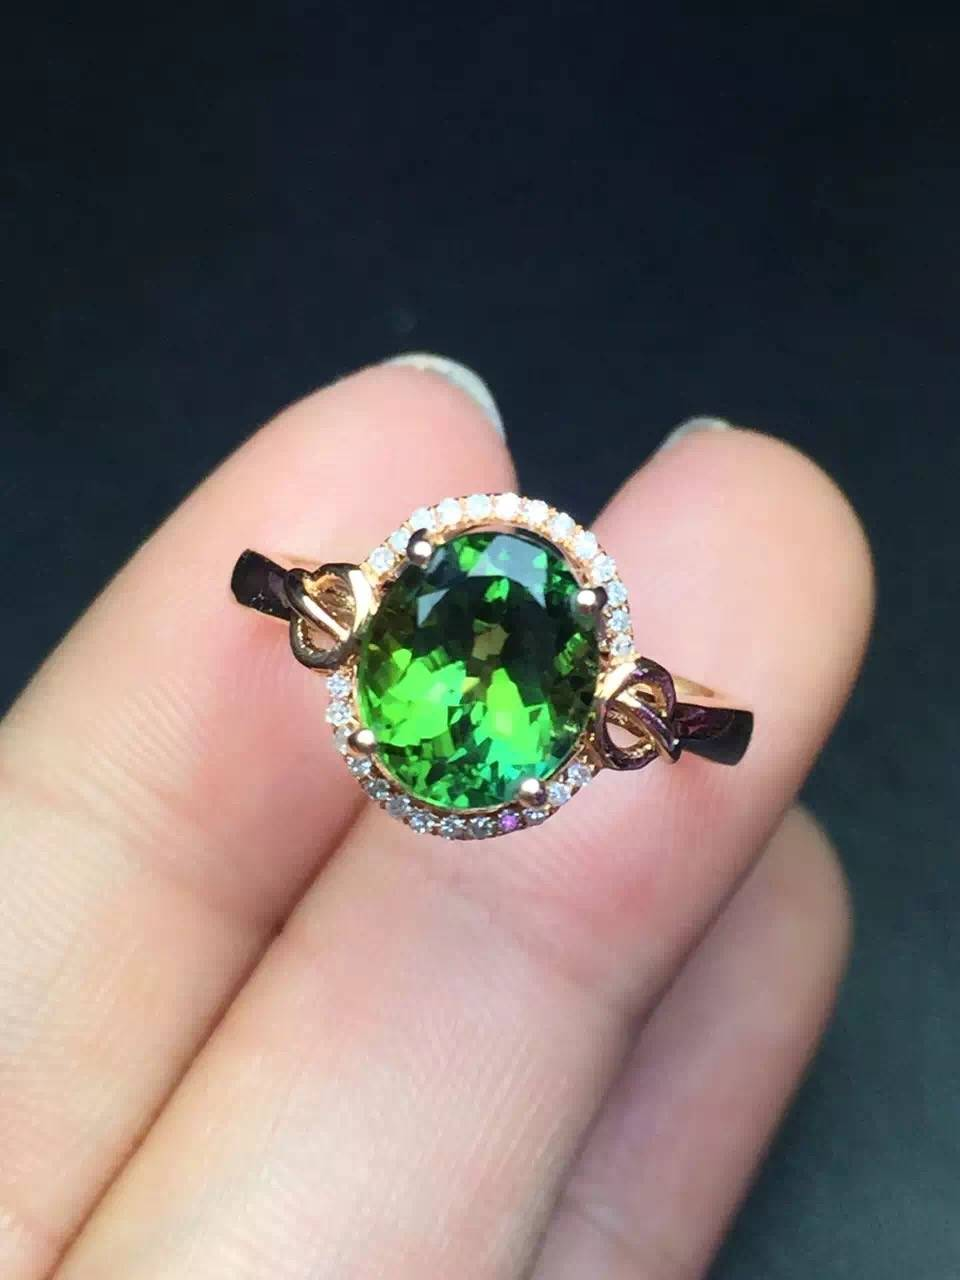 Natural Tourmaline Ring in 18k gold inlaid with diamonds